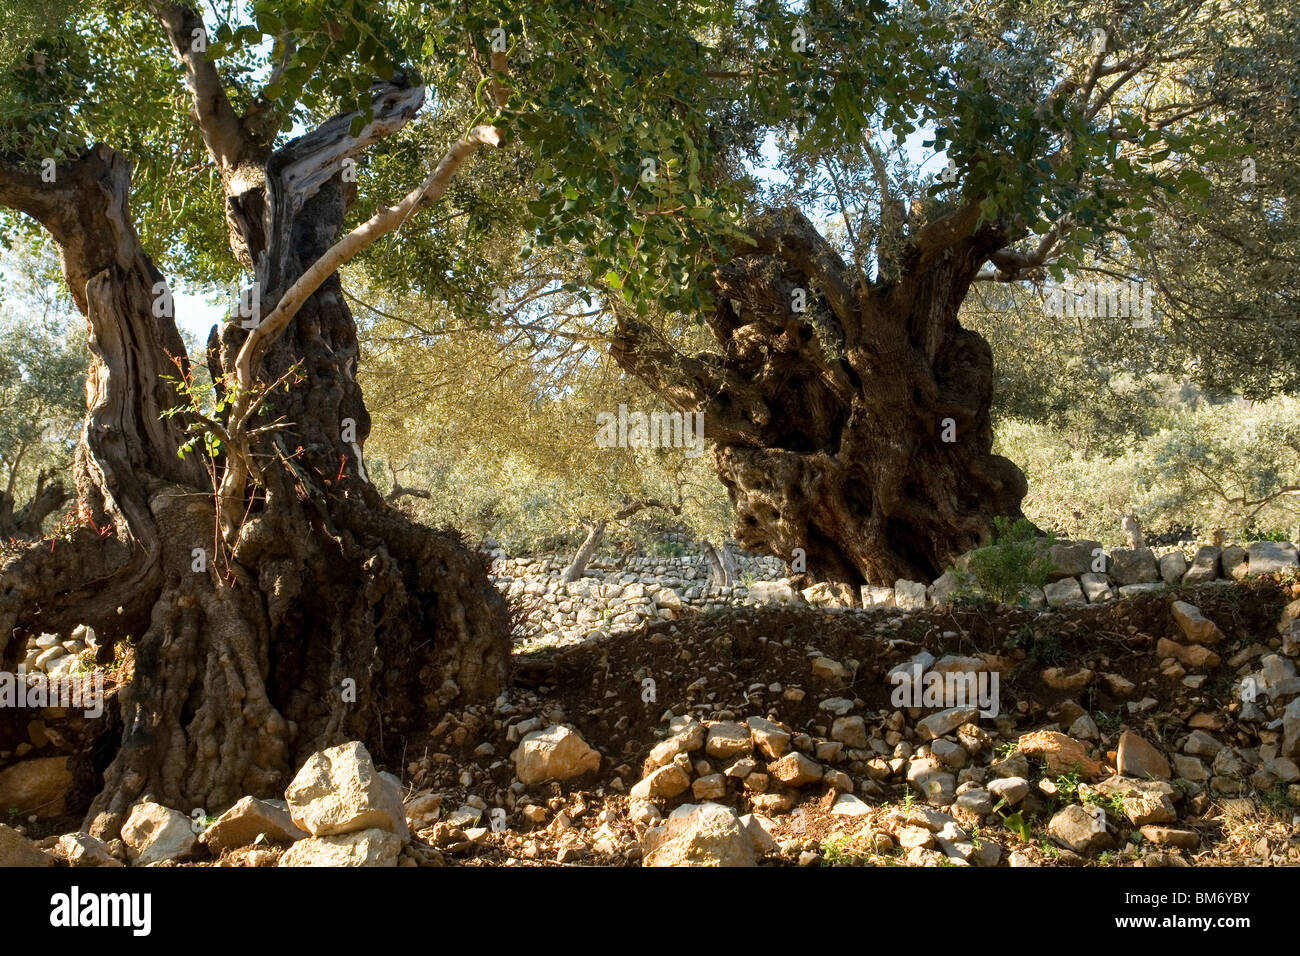 In Majorca, some hundred-year-old olive trees (Balearic islands - Spain). Quelques oliviers centenaires, à - Stock Image